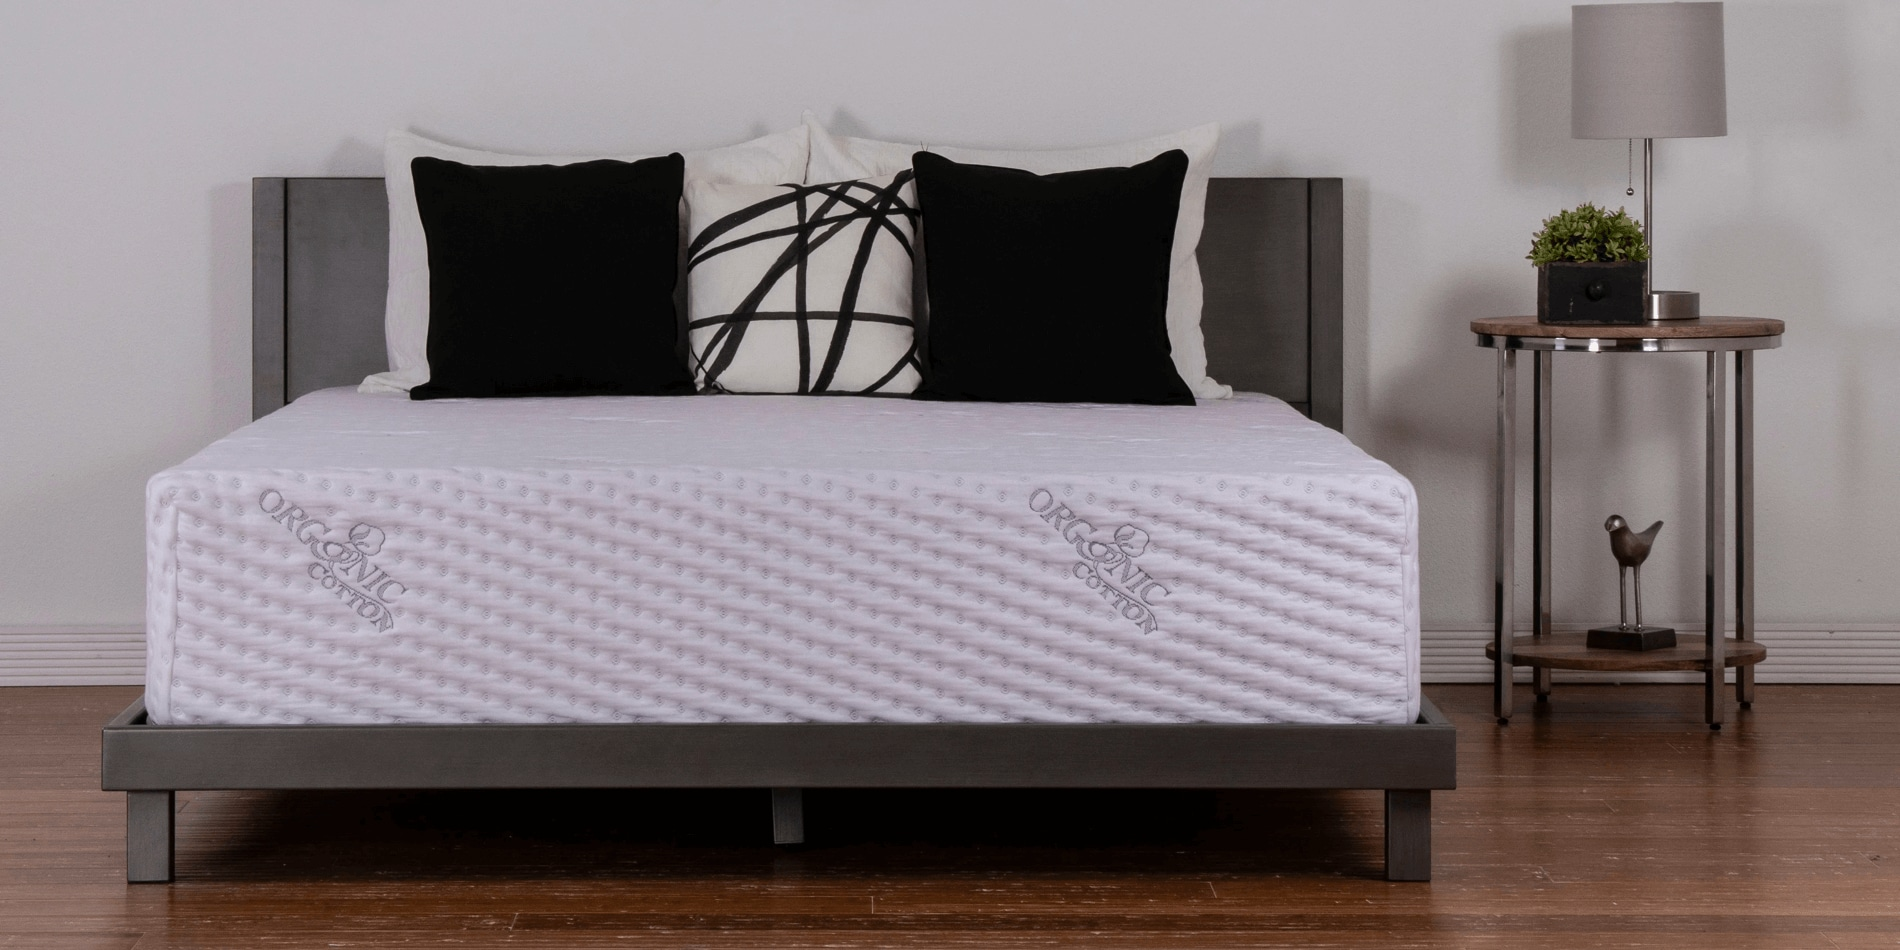 Mattresses By Size Type Brands Online At Our Best Bedroom Furniture Deals